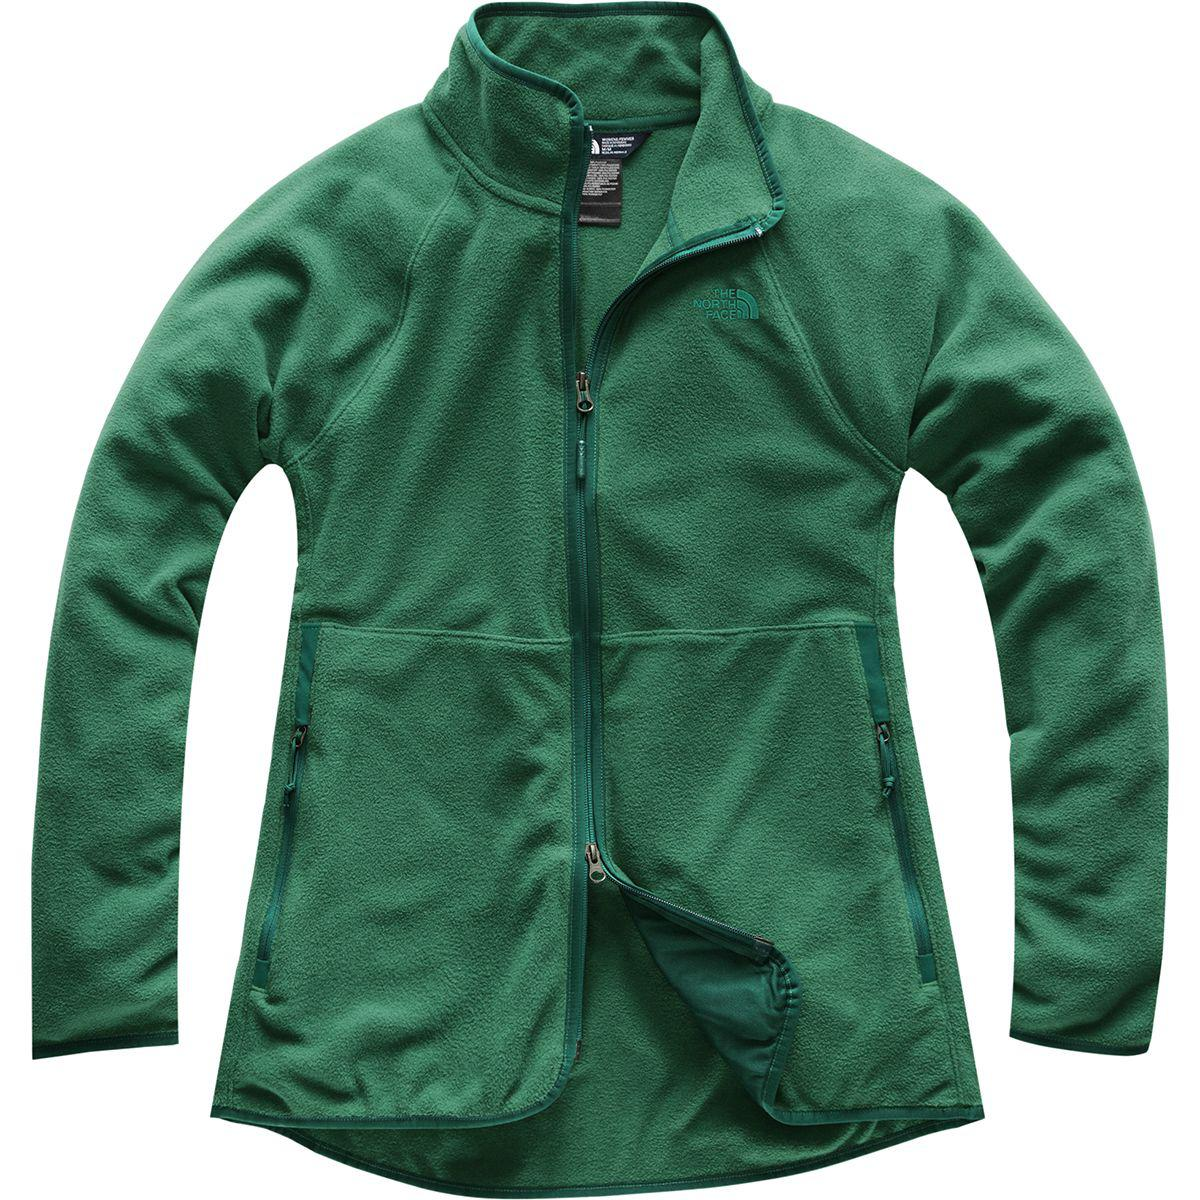 58c66f2fc4 Lyst - The North Face Glacier Alpine Full-zip Jacket in Green - Save 20%